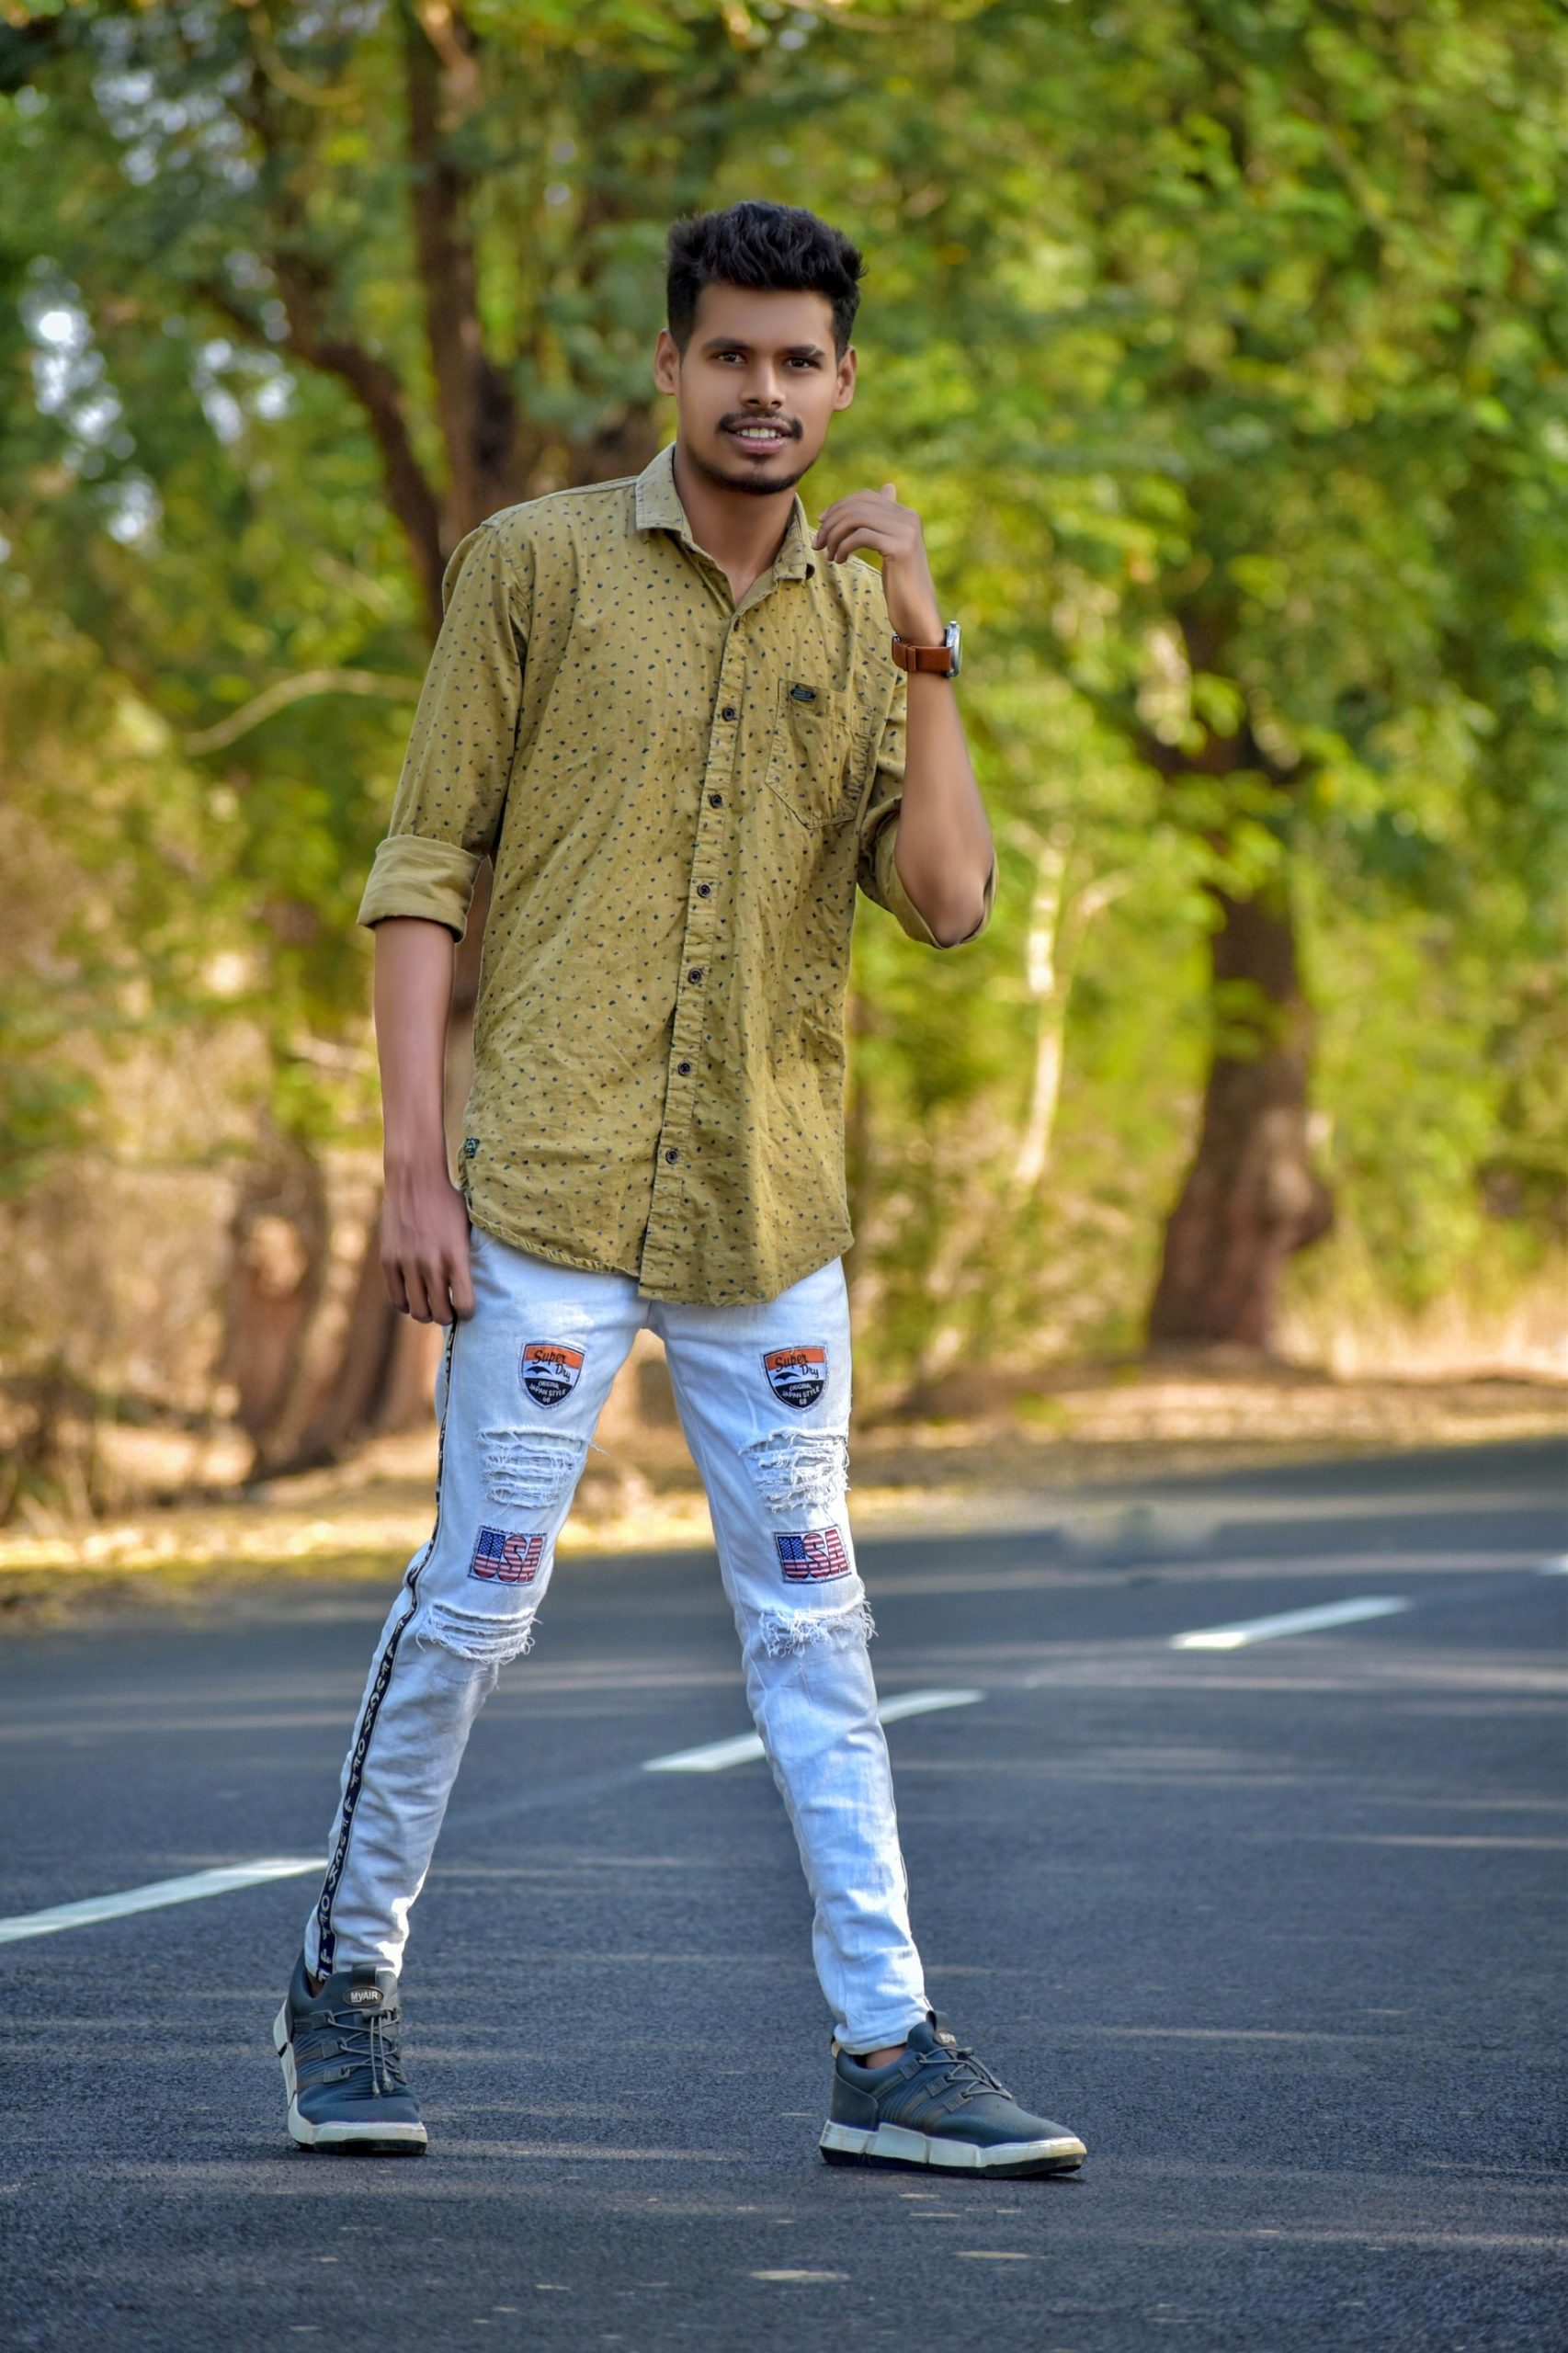 Boy posing on road